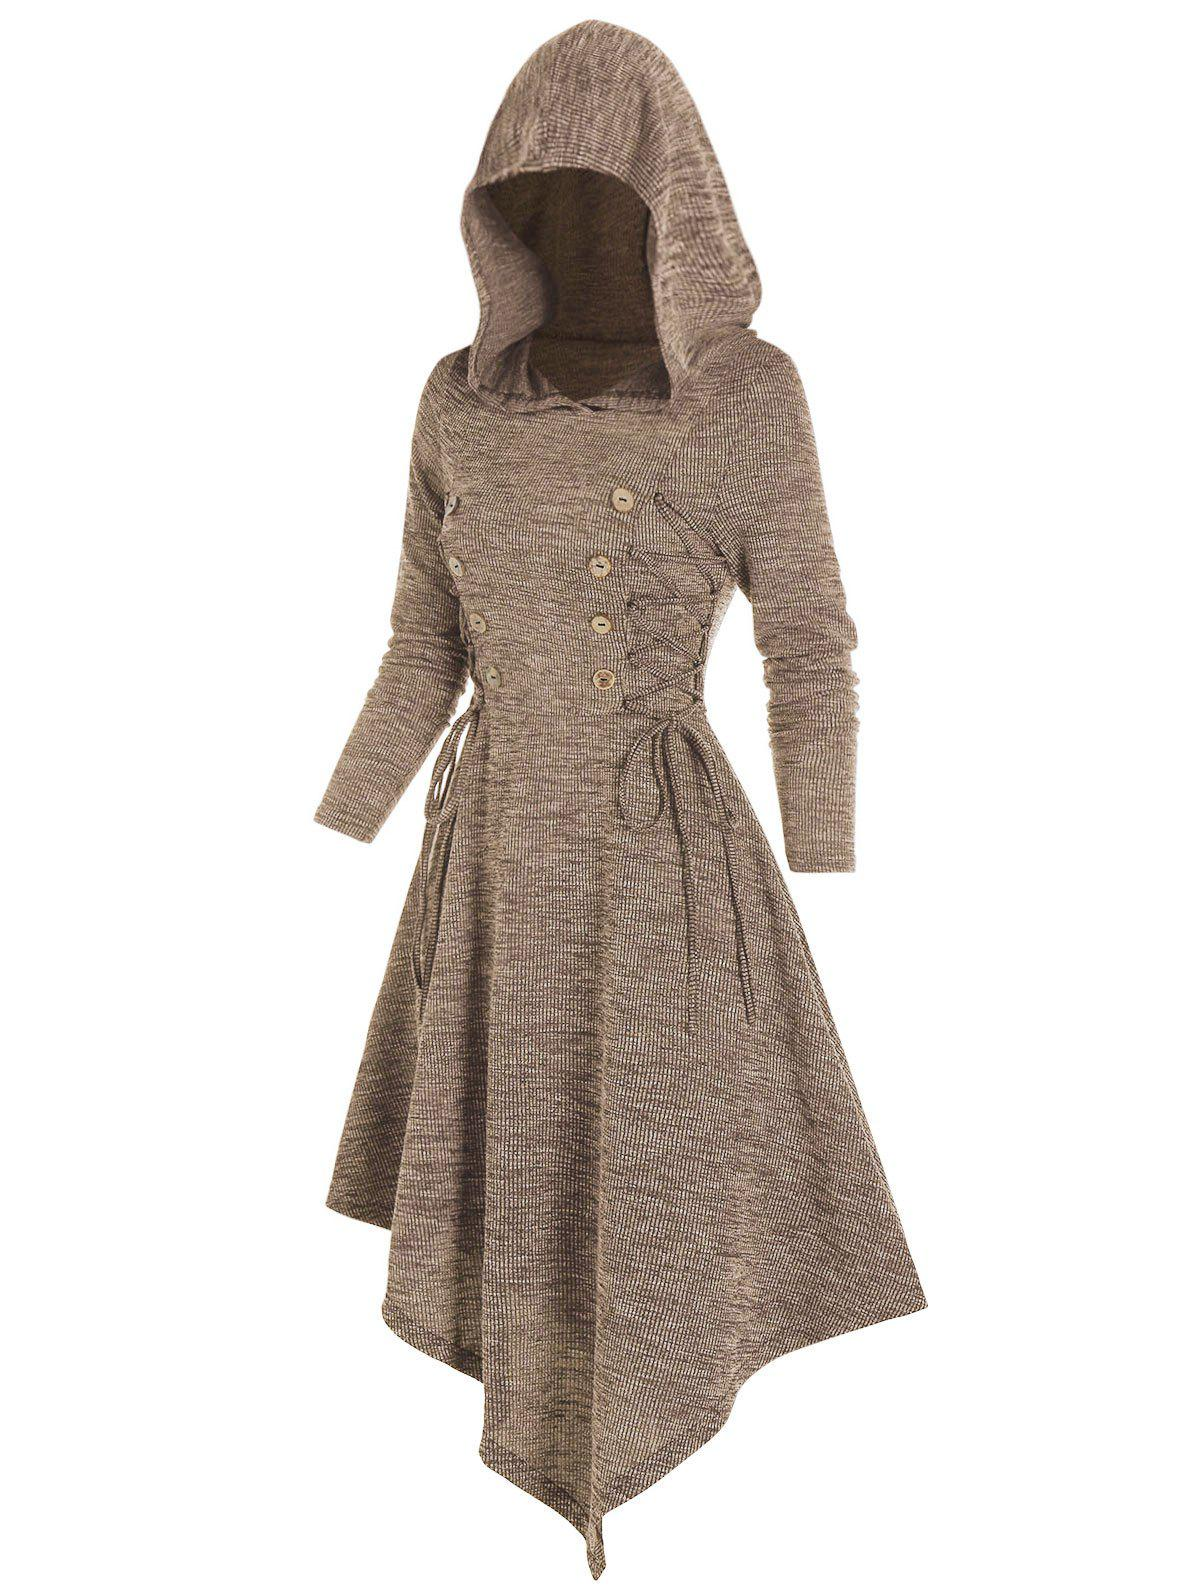 Lace Up Hooded Asymmetrical Knitted Dress - COFFEE 2XL